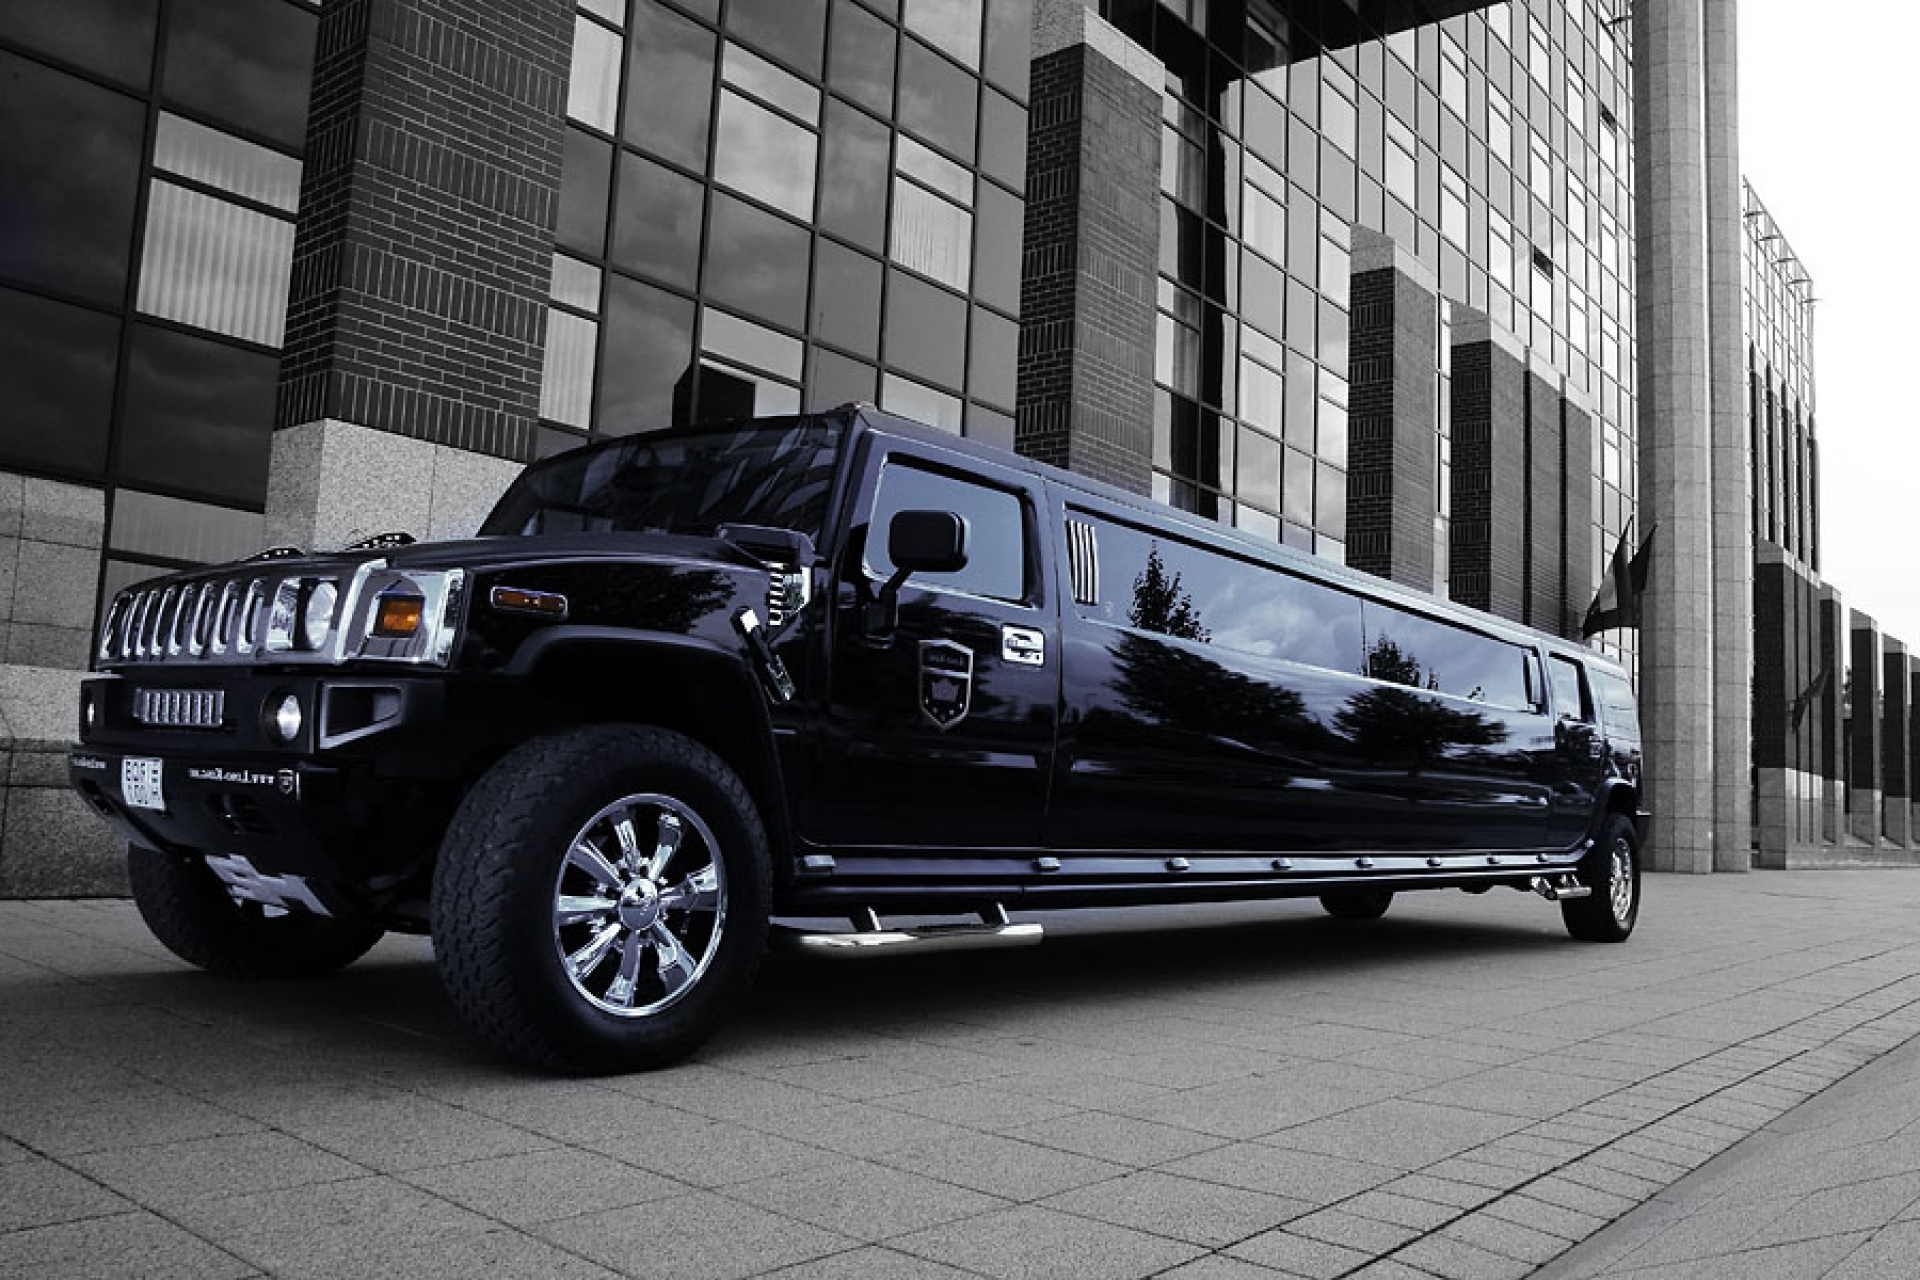 hummer limo in budapest